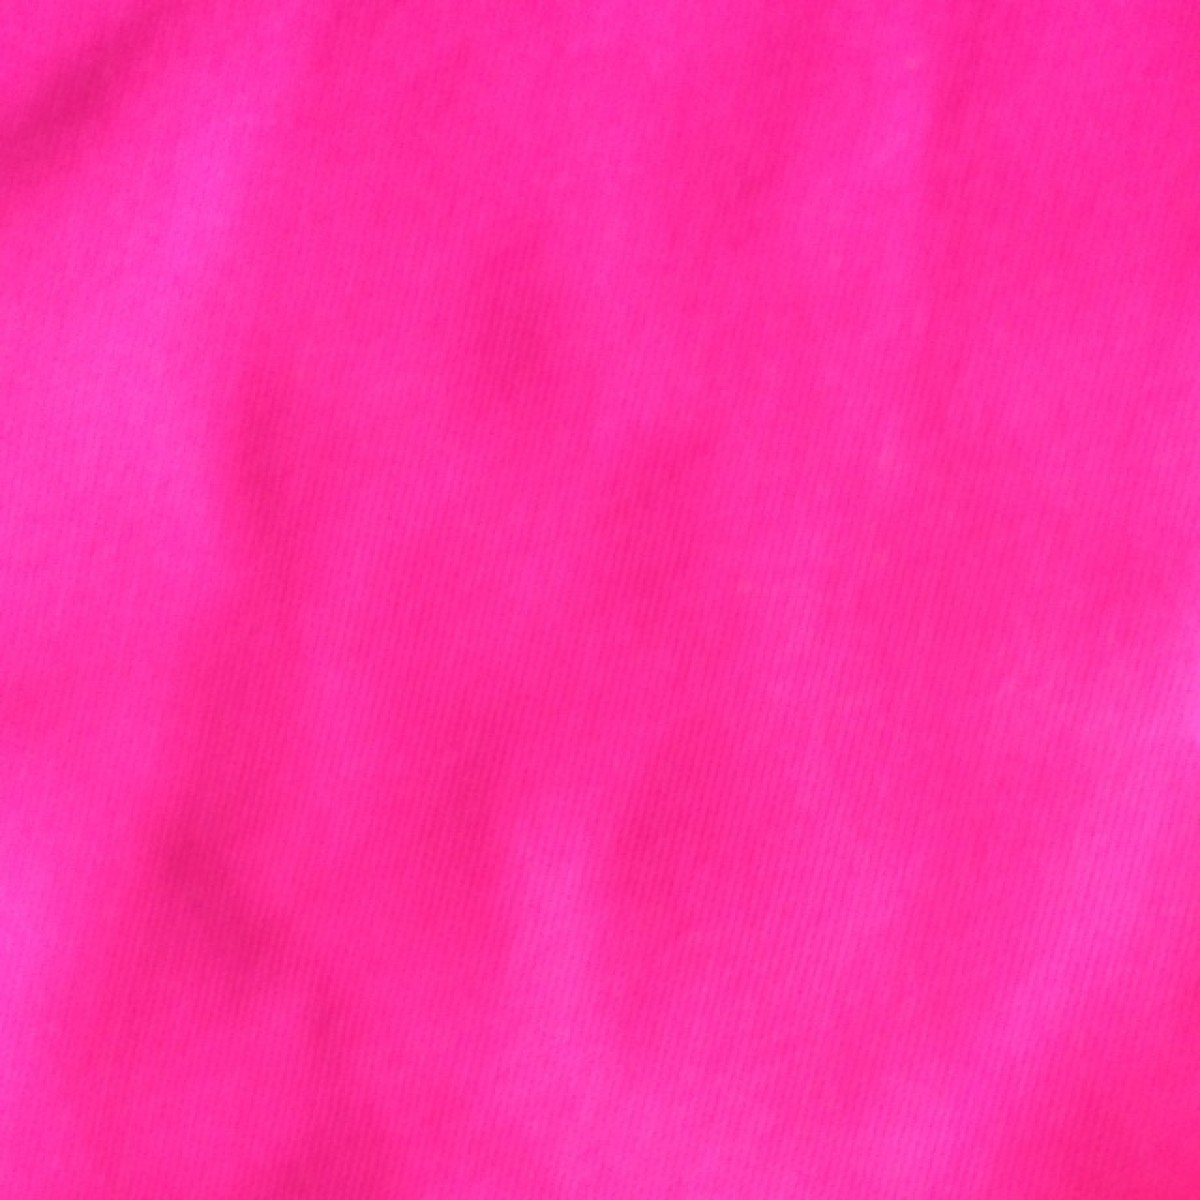 Solid Neon Pink Wallpaper Neon pink colour background 1200x1200